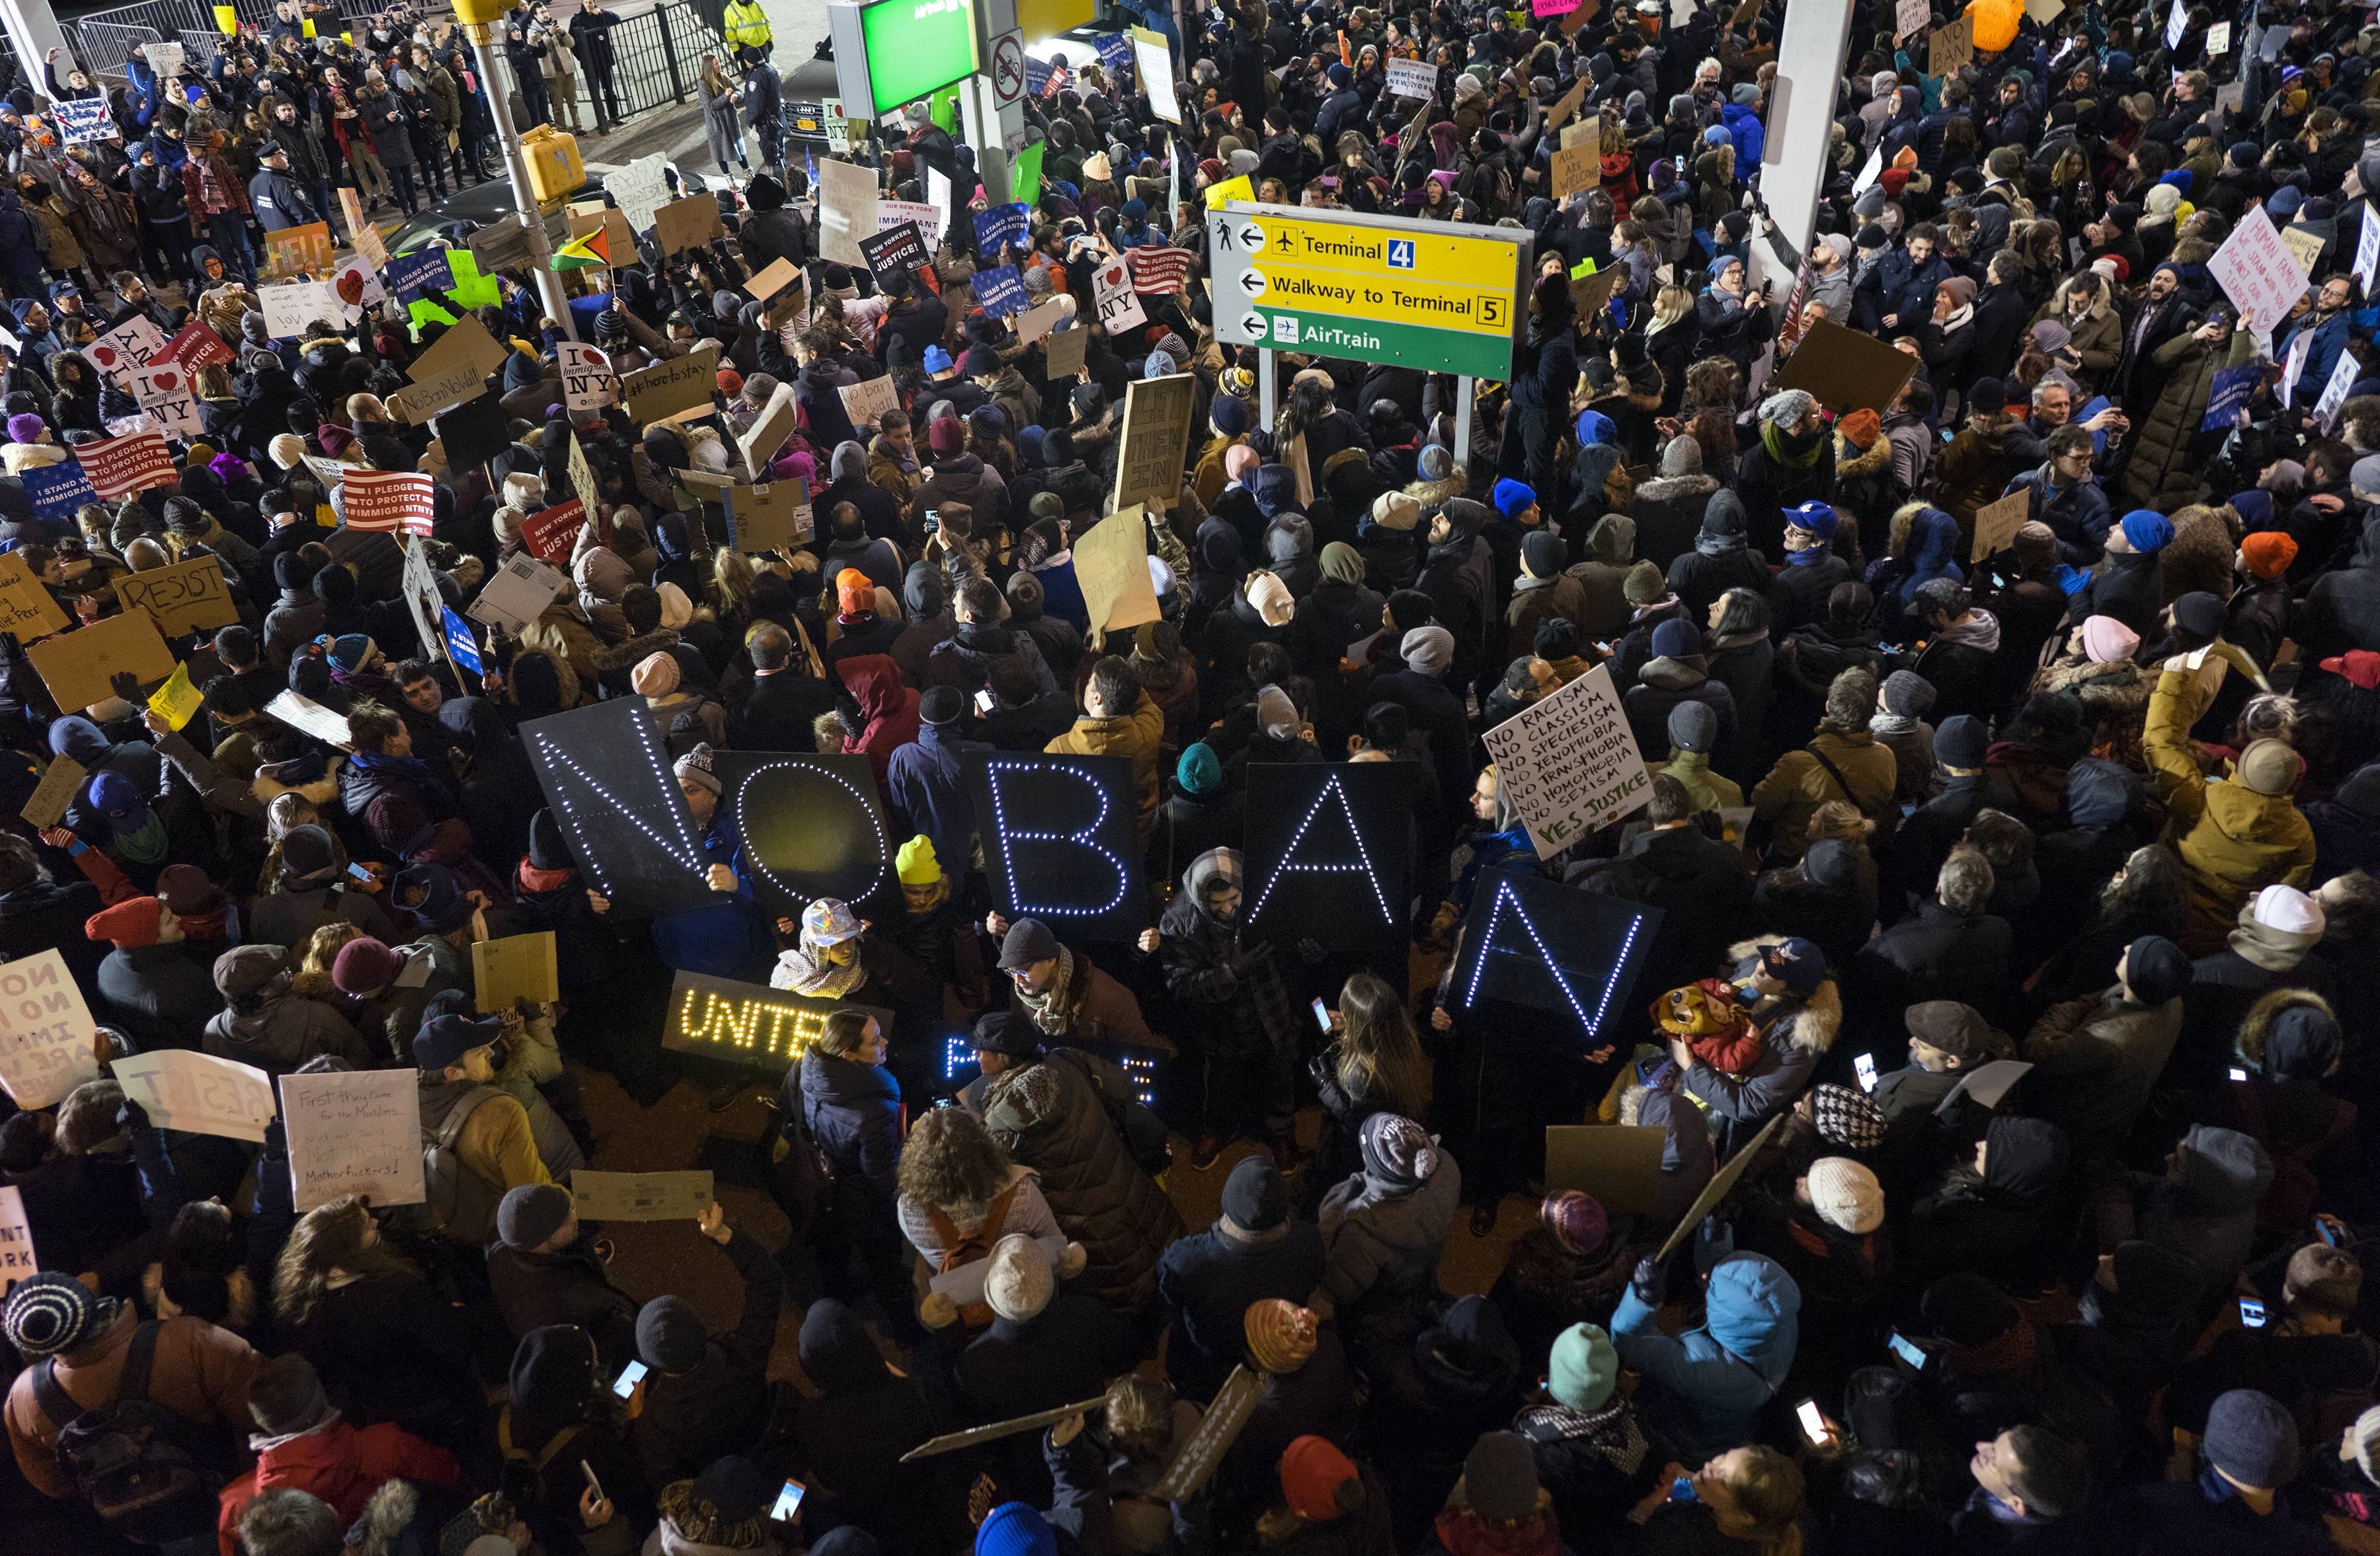 Protesters assemble Saturday at John F. Kennedy International Airport in New York. On Friday, Jan. 27, President Donald Trump signed an executive order suspending all immigration from countries with terrorism concerns for 90 days. Countries included in the ban are Iraq, Syria, Iran, Sudan, Libya, Somalia and Yemen, which are all Muslim-majority nations.